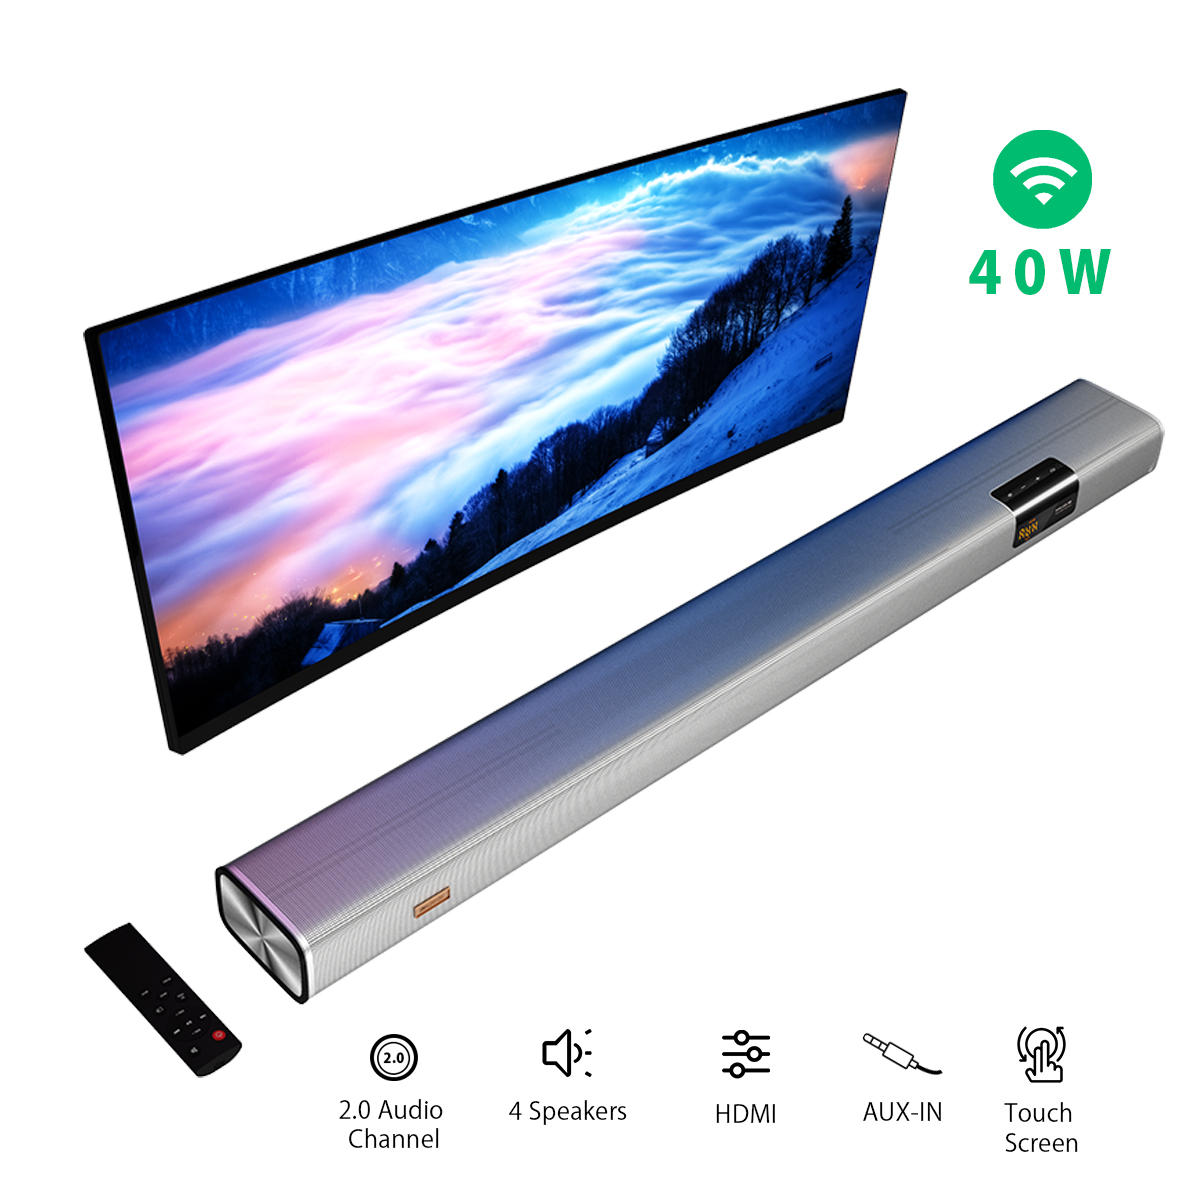 Soundbar 40W 2.0 Audio Channel